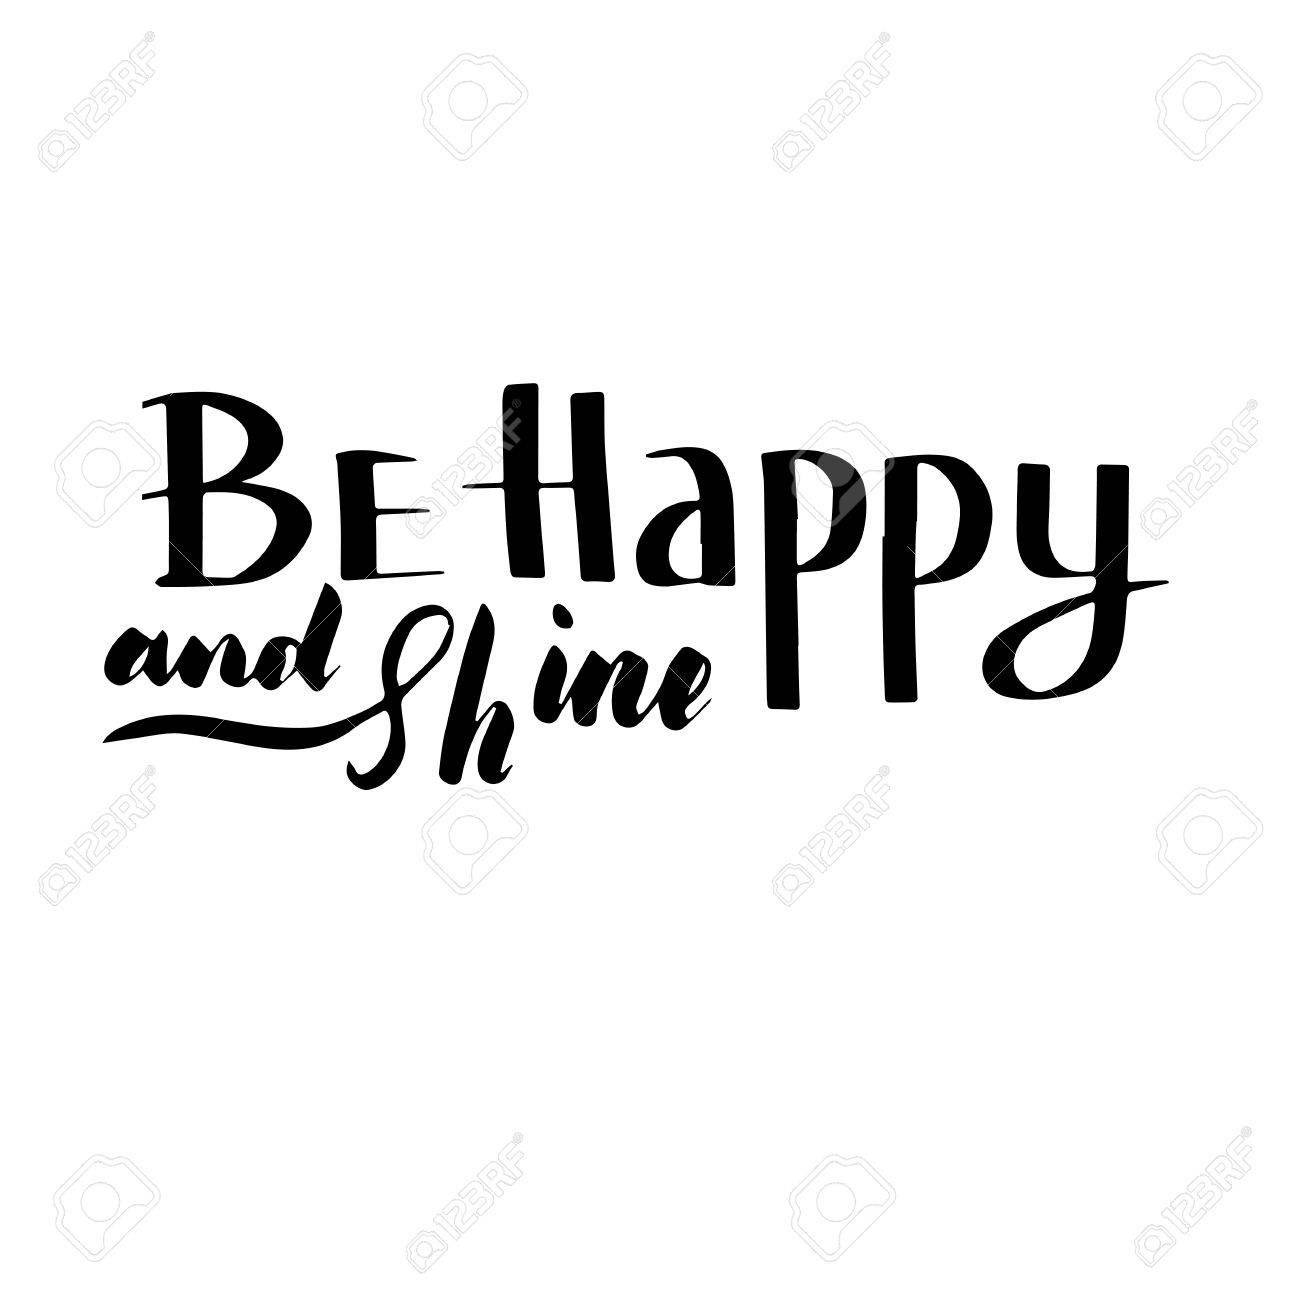 Be happy and shine: inspirational phrase, a quote for good mood...